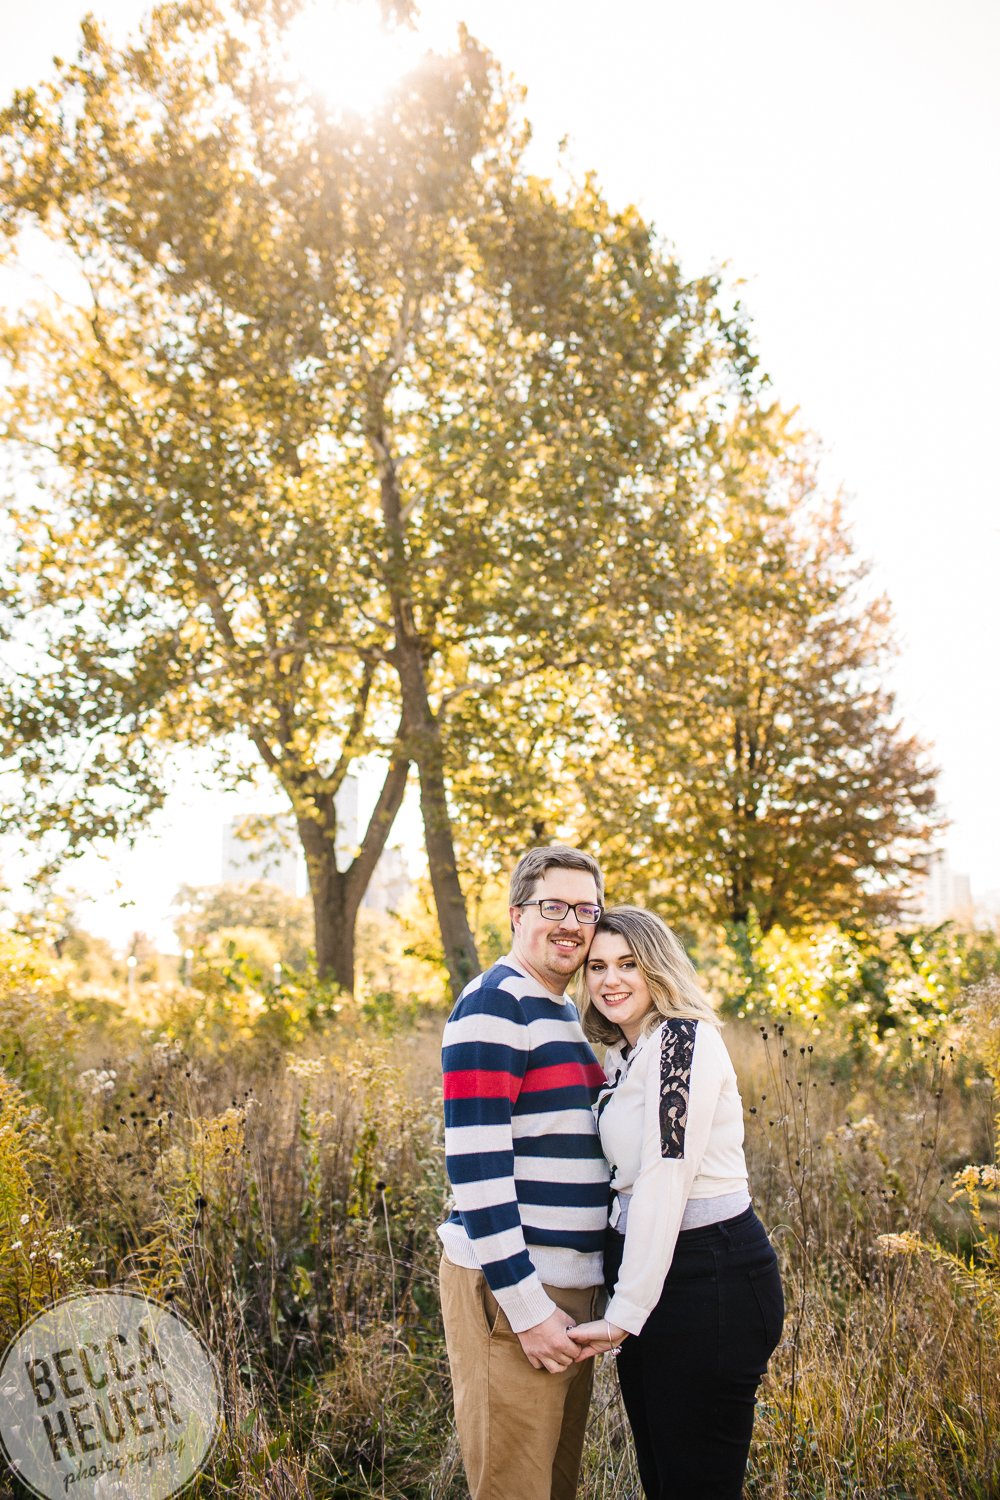 LincolnPark Proposal_Engagement Photography-023.jpg